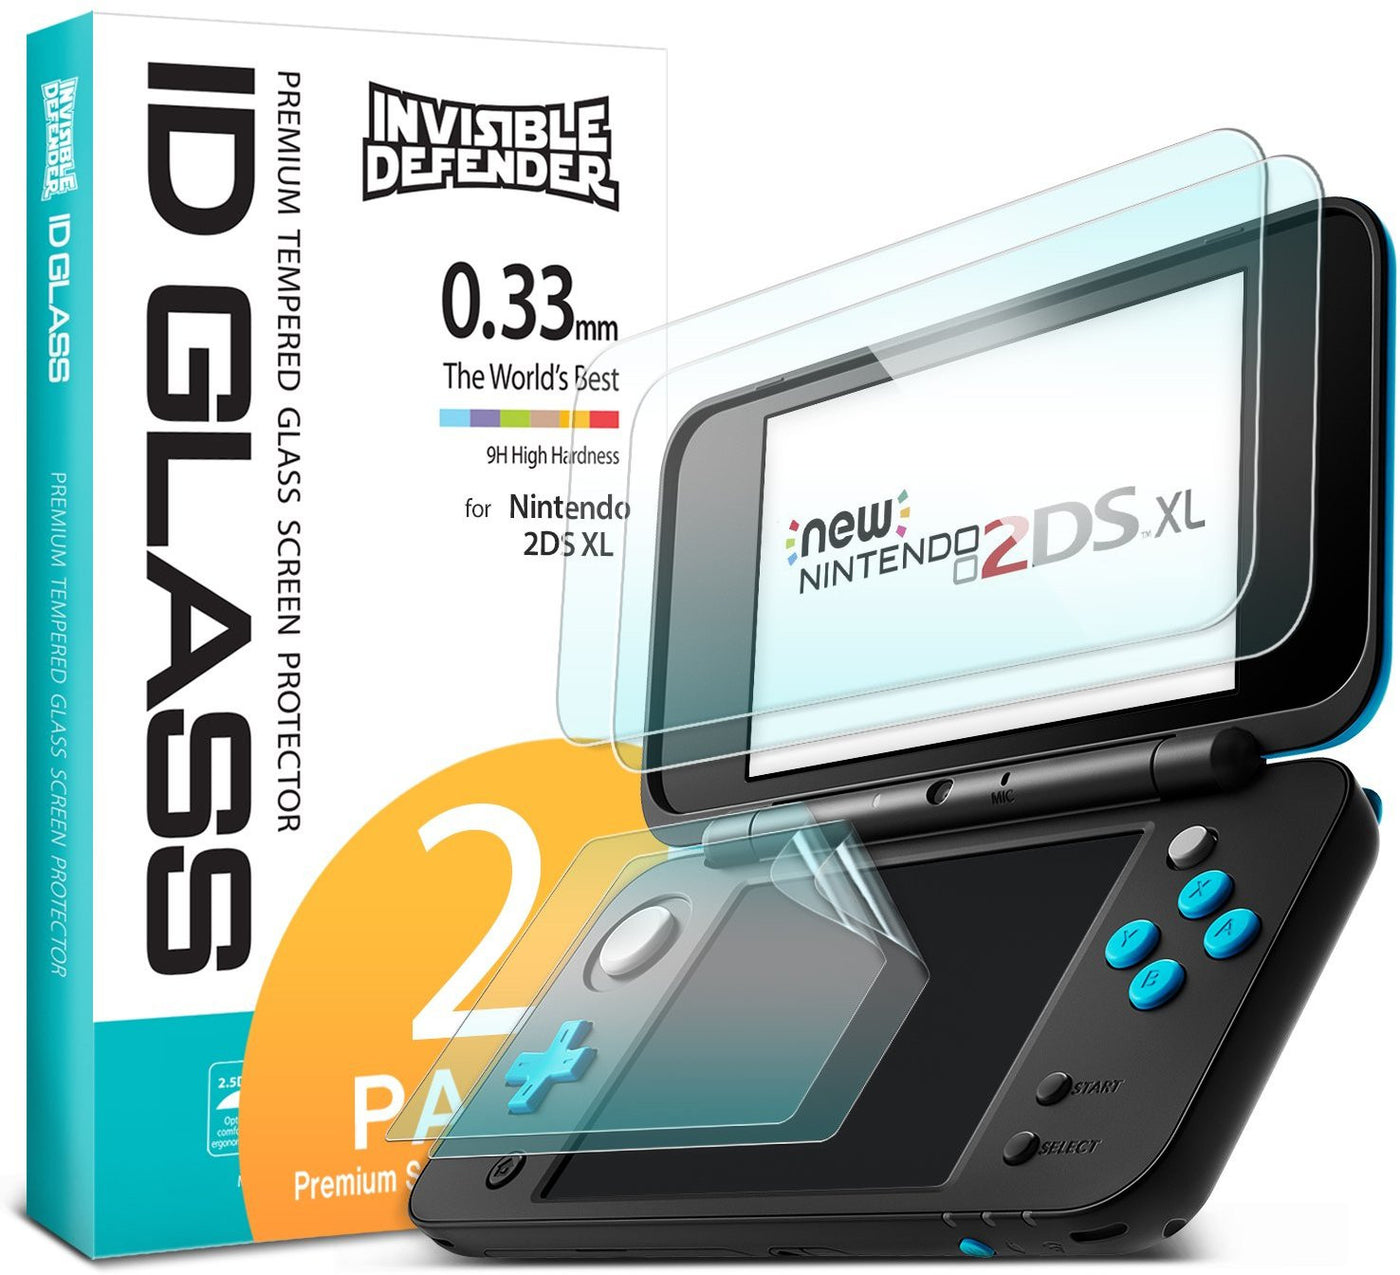 nintendo 2ds xl ringke invisible defender tempered glass 0 33mm